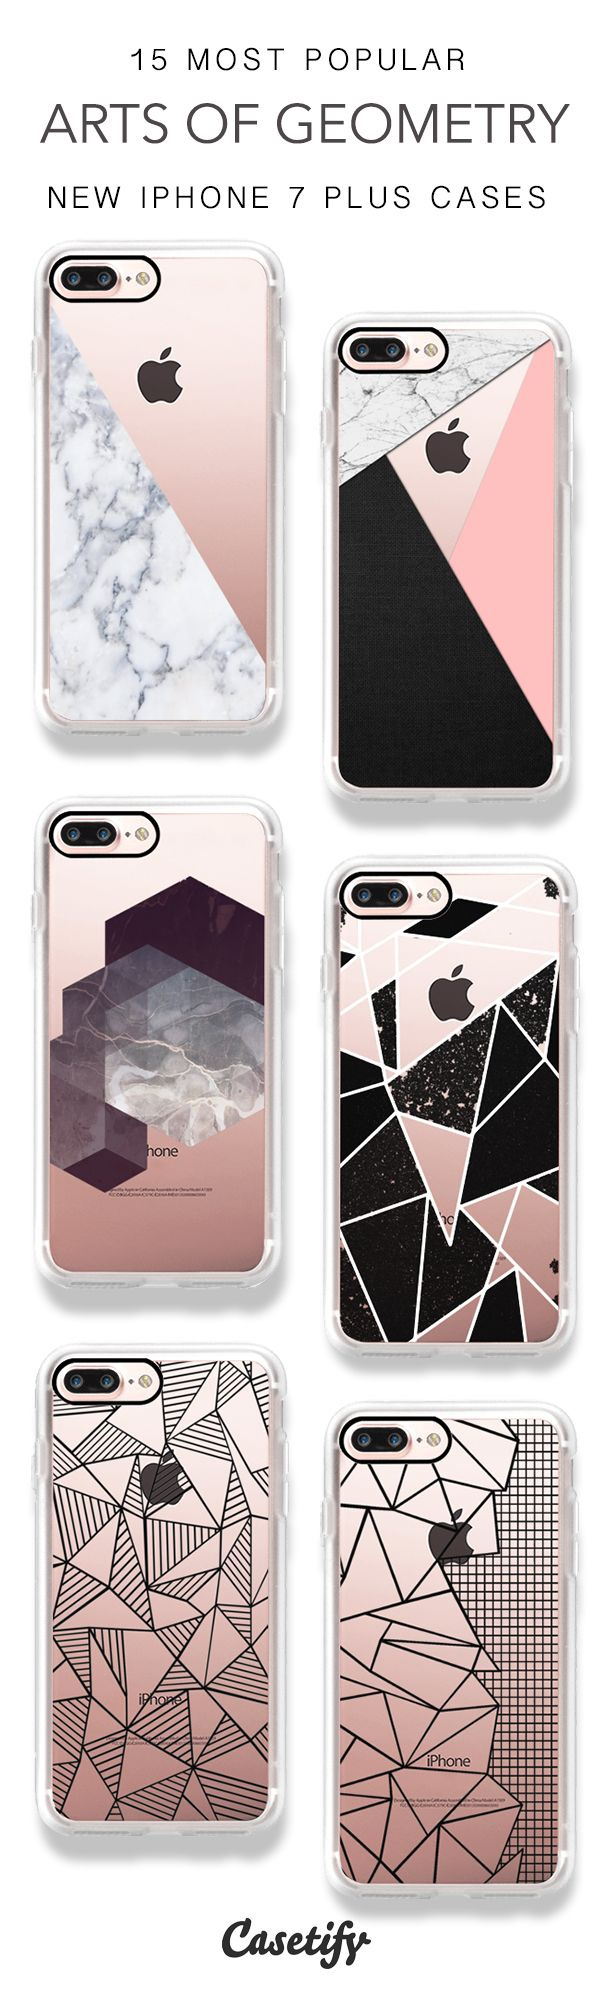 Explore the Arts of Geometry! 15 Most Popular Marble & Grids iPhone 7 Cases…